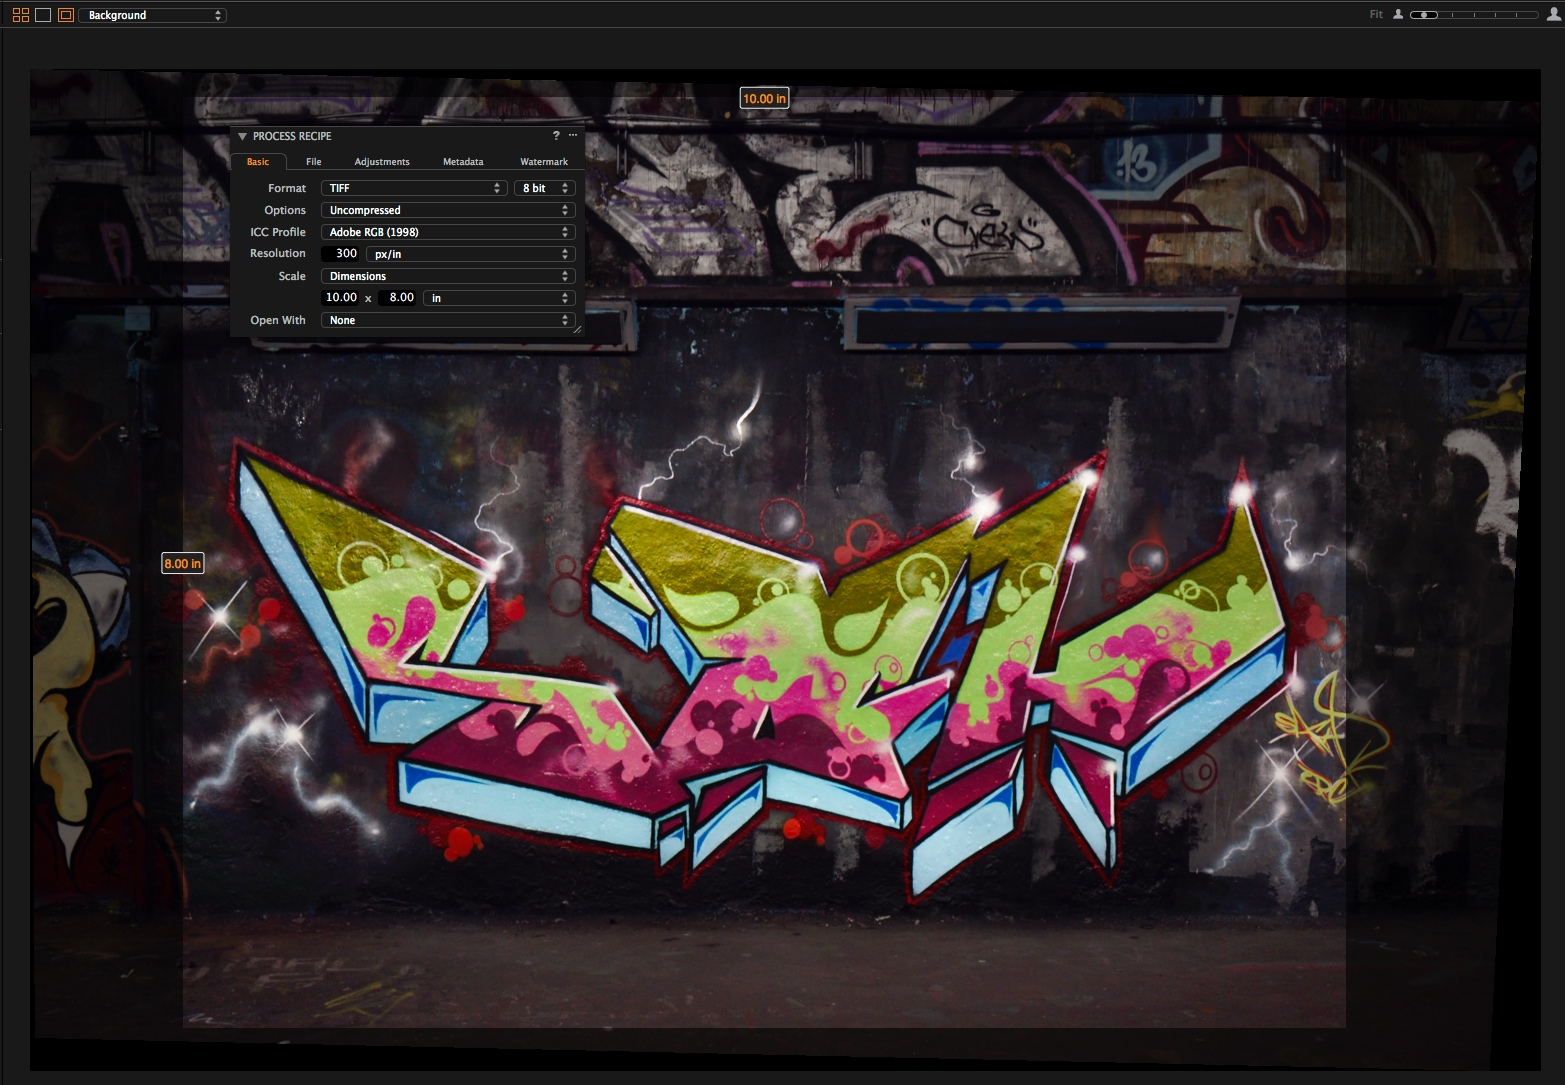 Capture One Blog » Blog Archive Advanced cropping tips for a